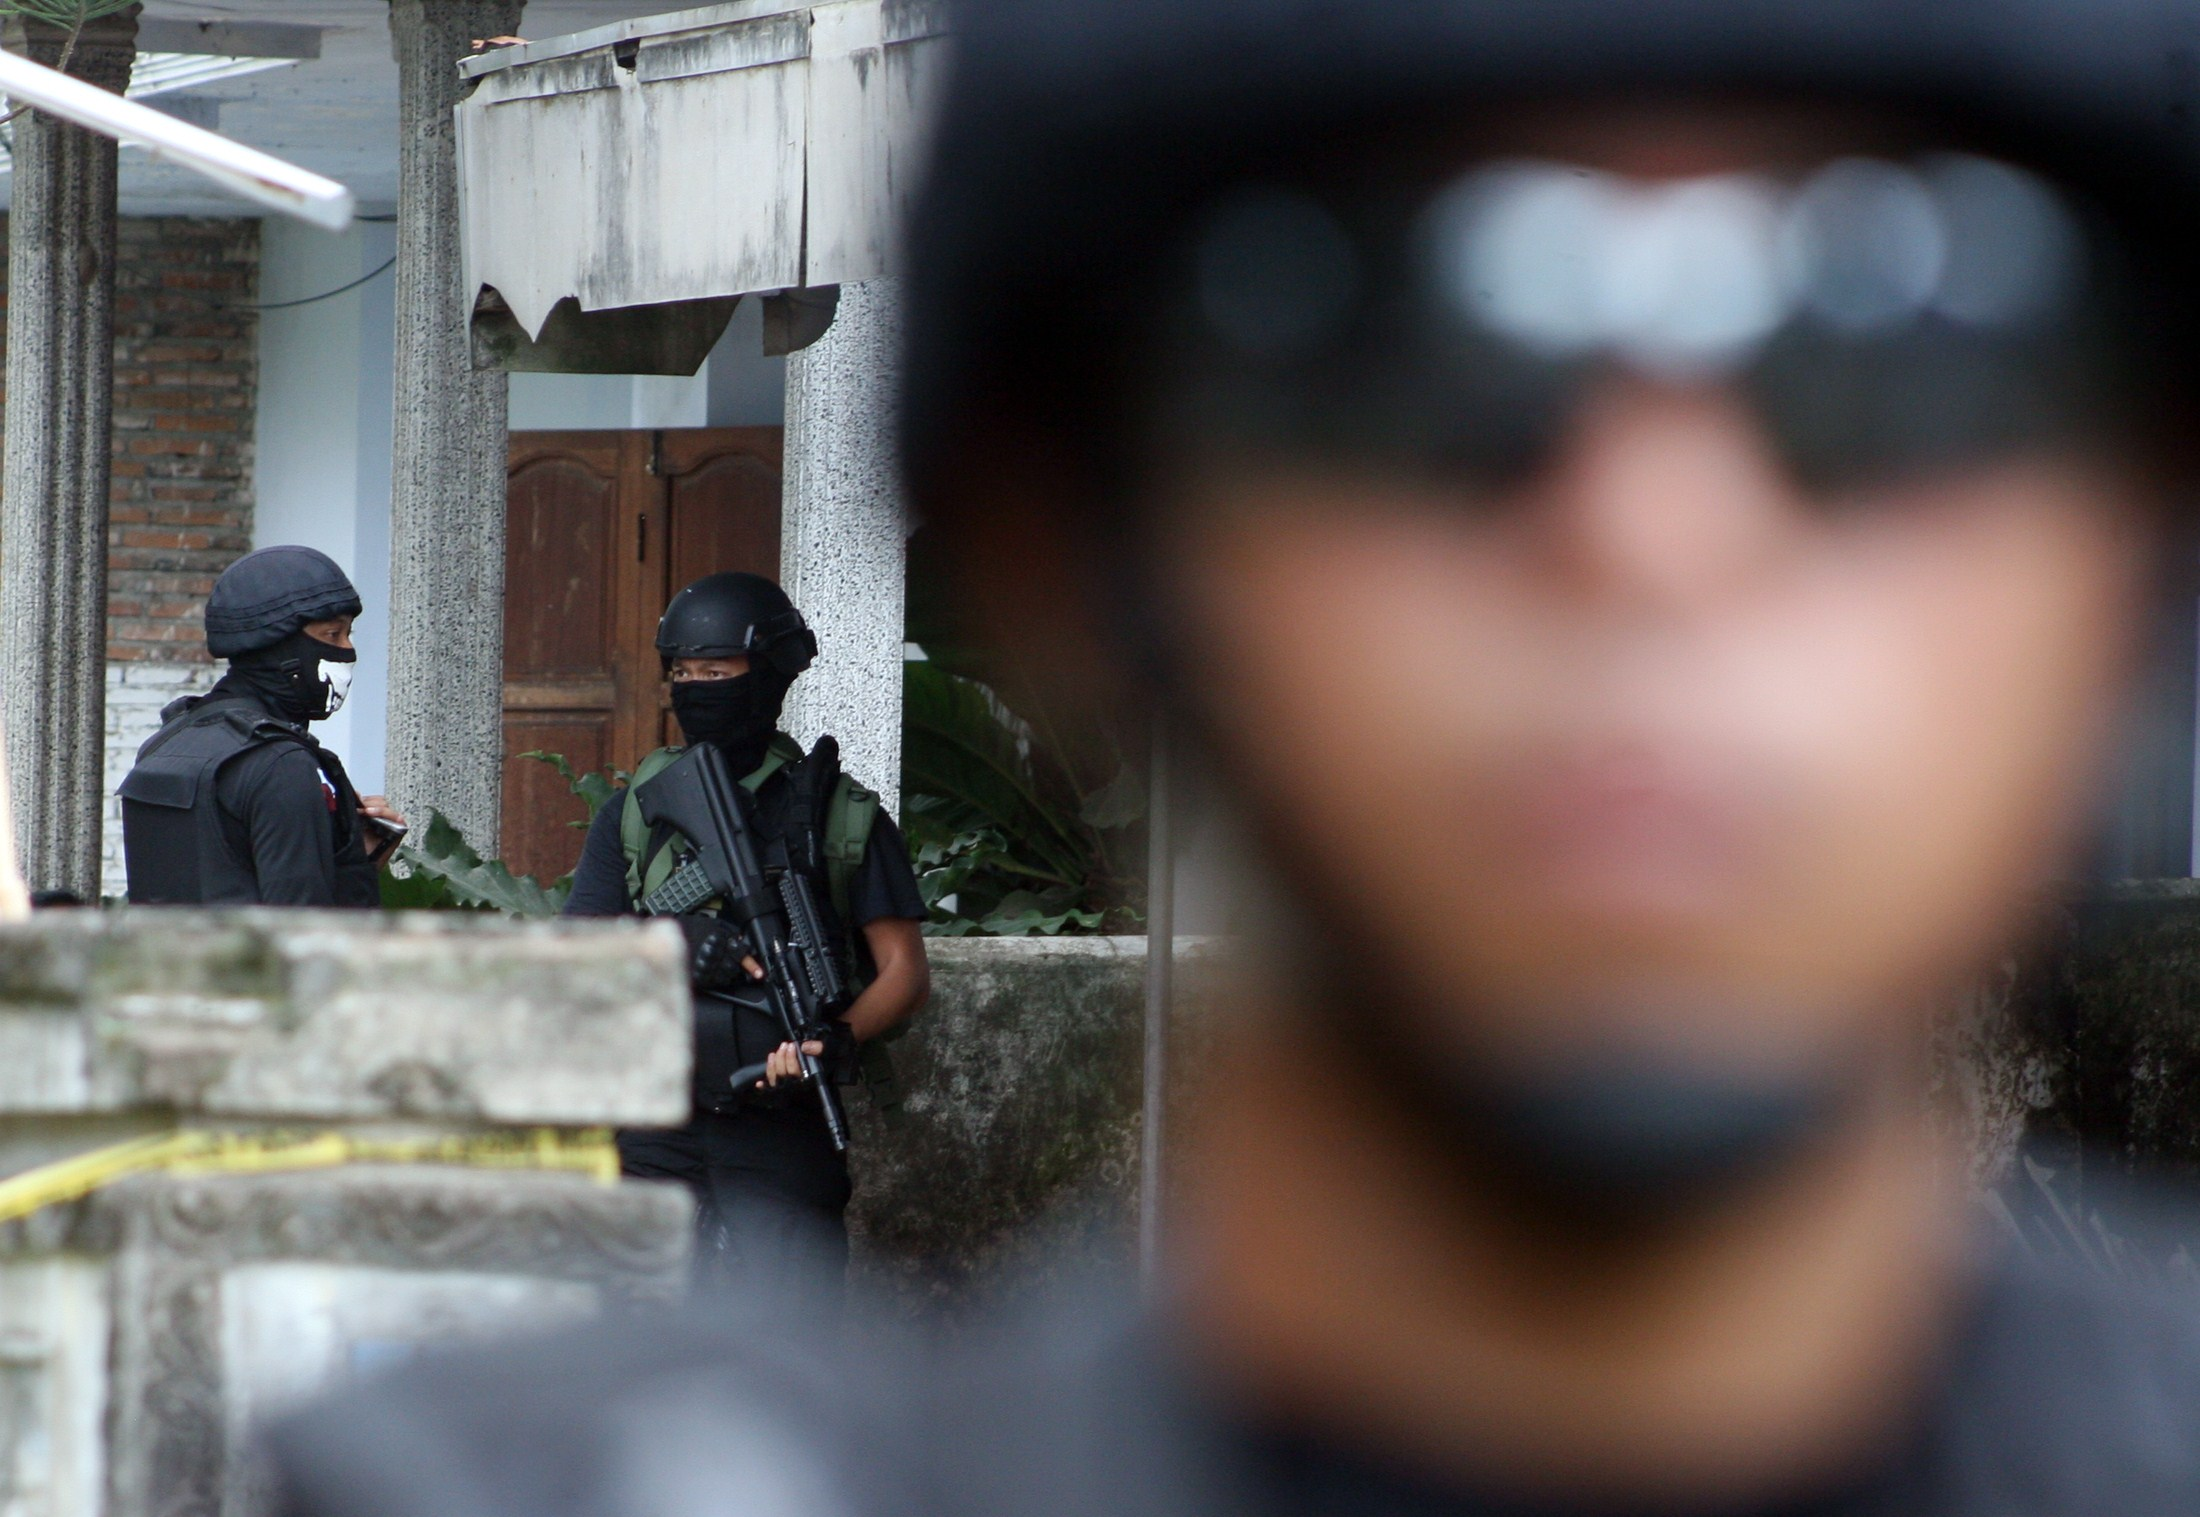 Indonesian antiterrorism police squad Densus 88 search houses in the Indonesian town of Kediri, in eastern Java, on Jan. 16, 2015